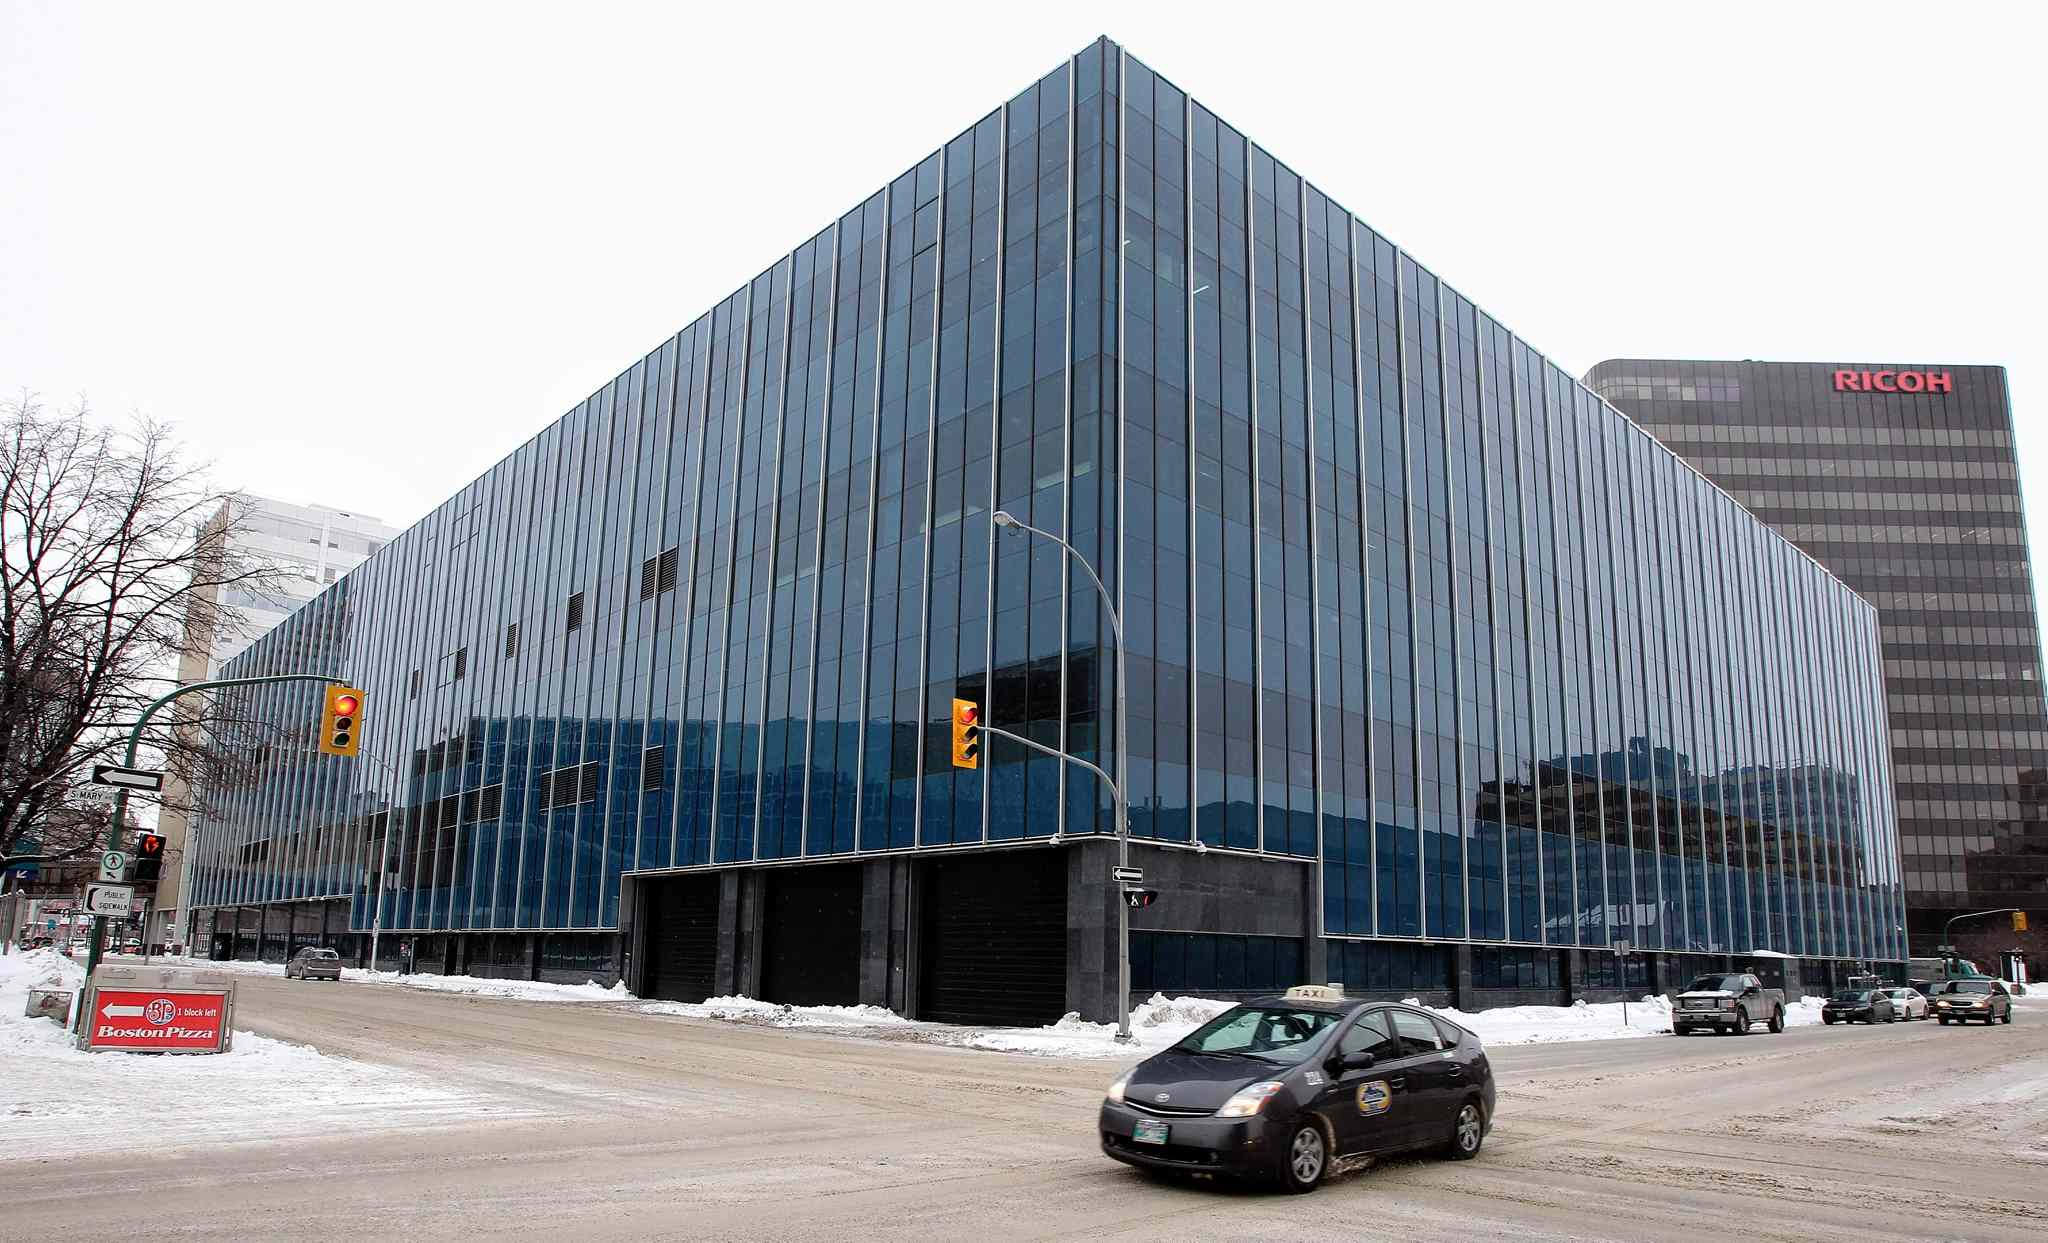 External auditors will examine the police headquarters project after council approves the audit.